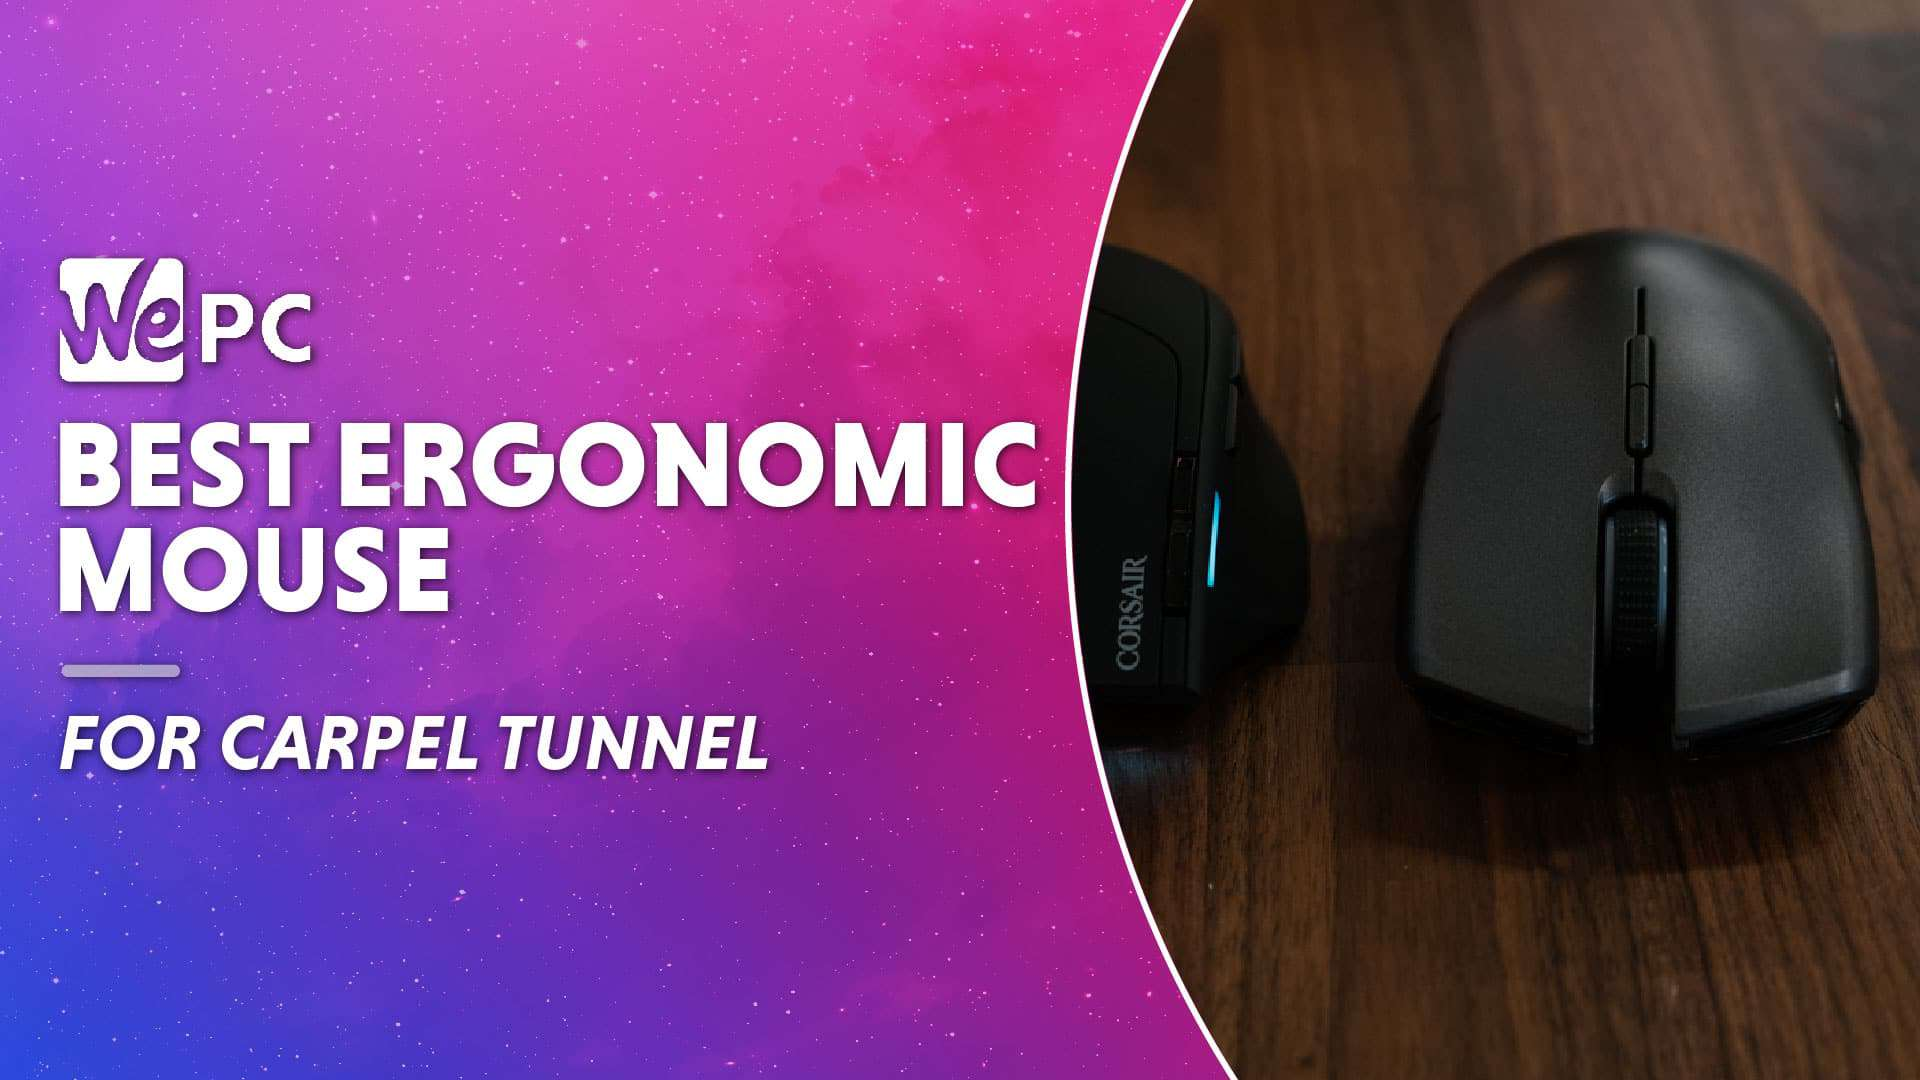 WEPC Best mouse for carpel tunnel Featured image 01